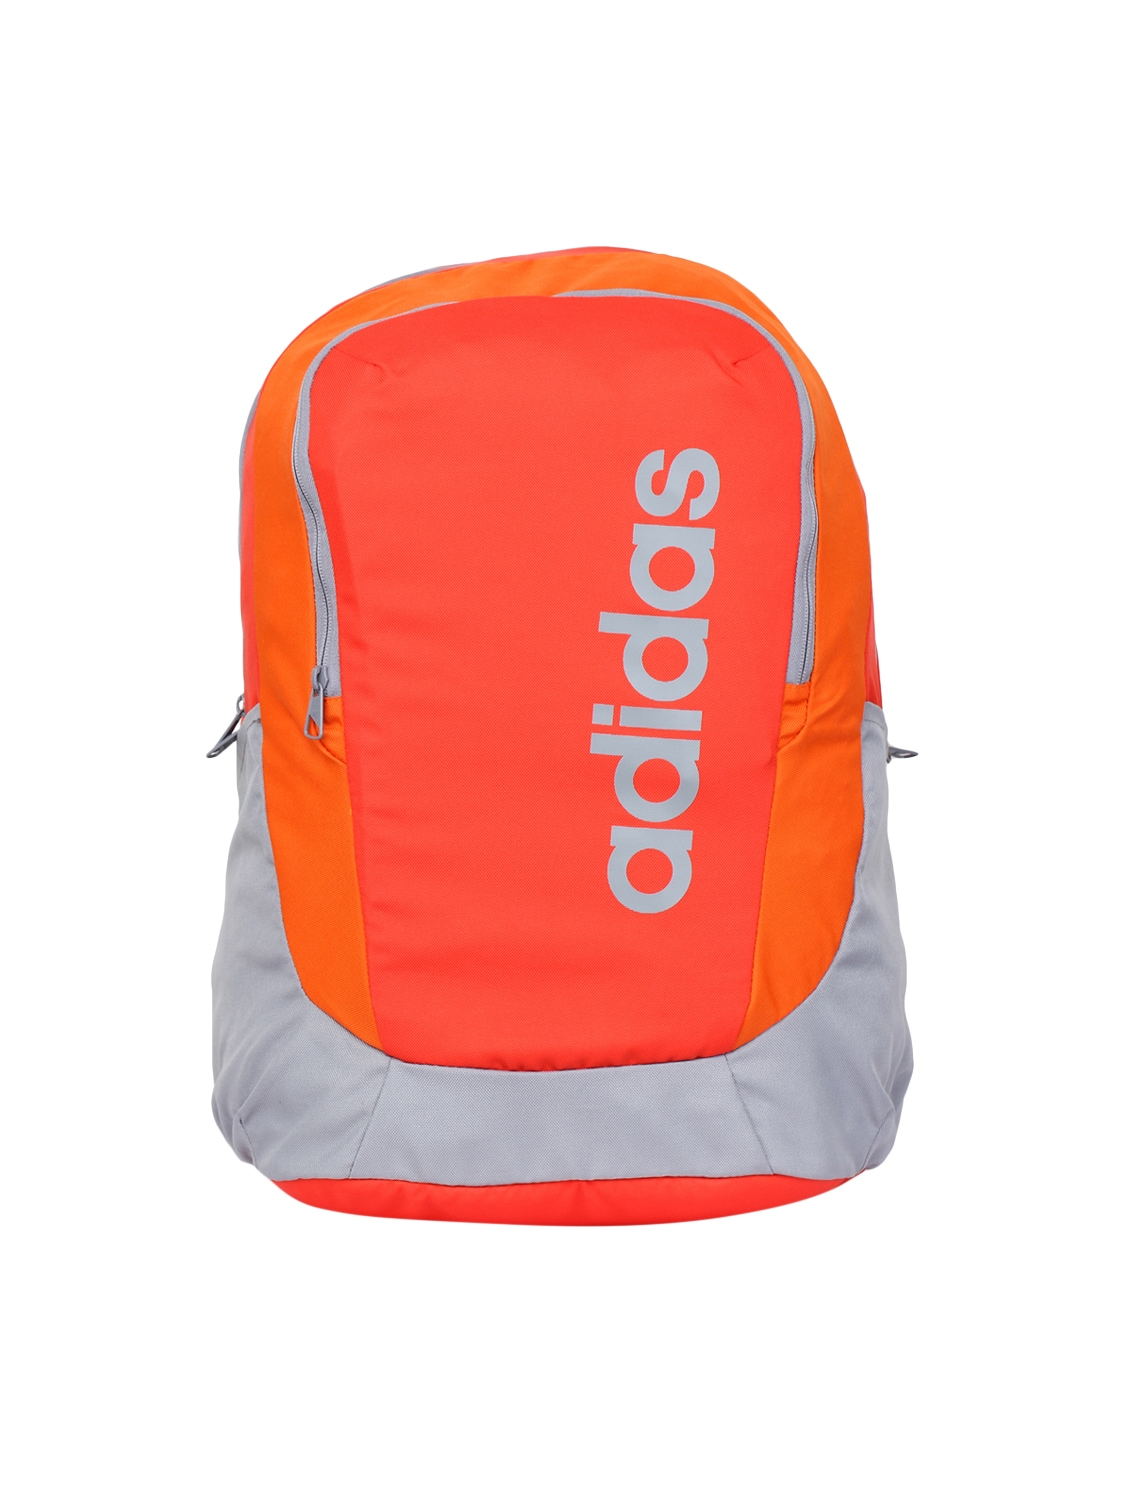 3bccafd5cb Buy Red   Orange Polyester Backpack for Men from Adidas for ₹2259 at 10%  off